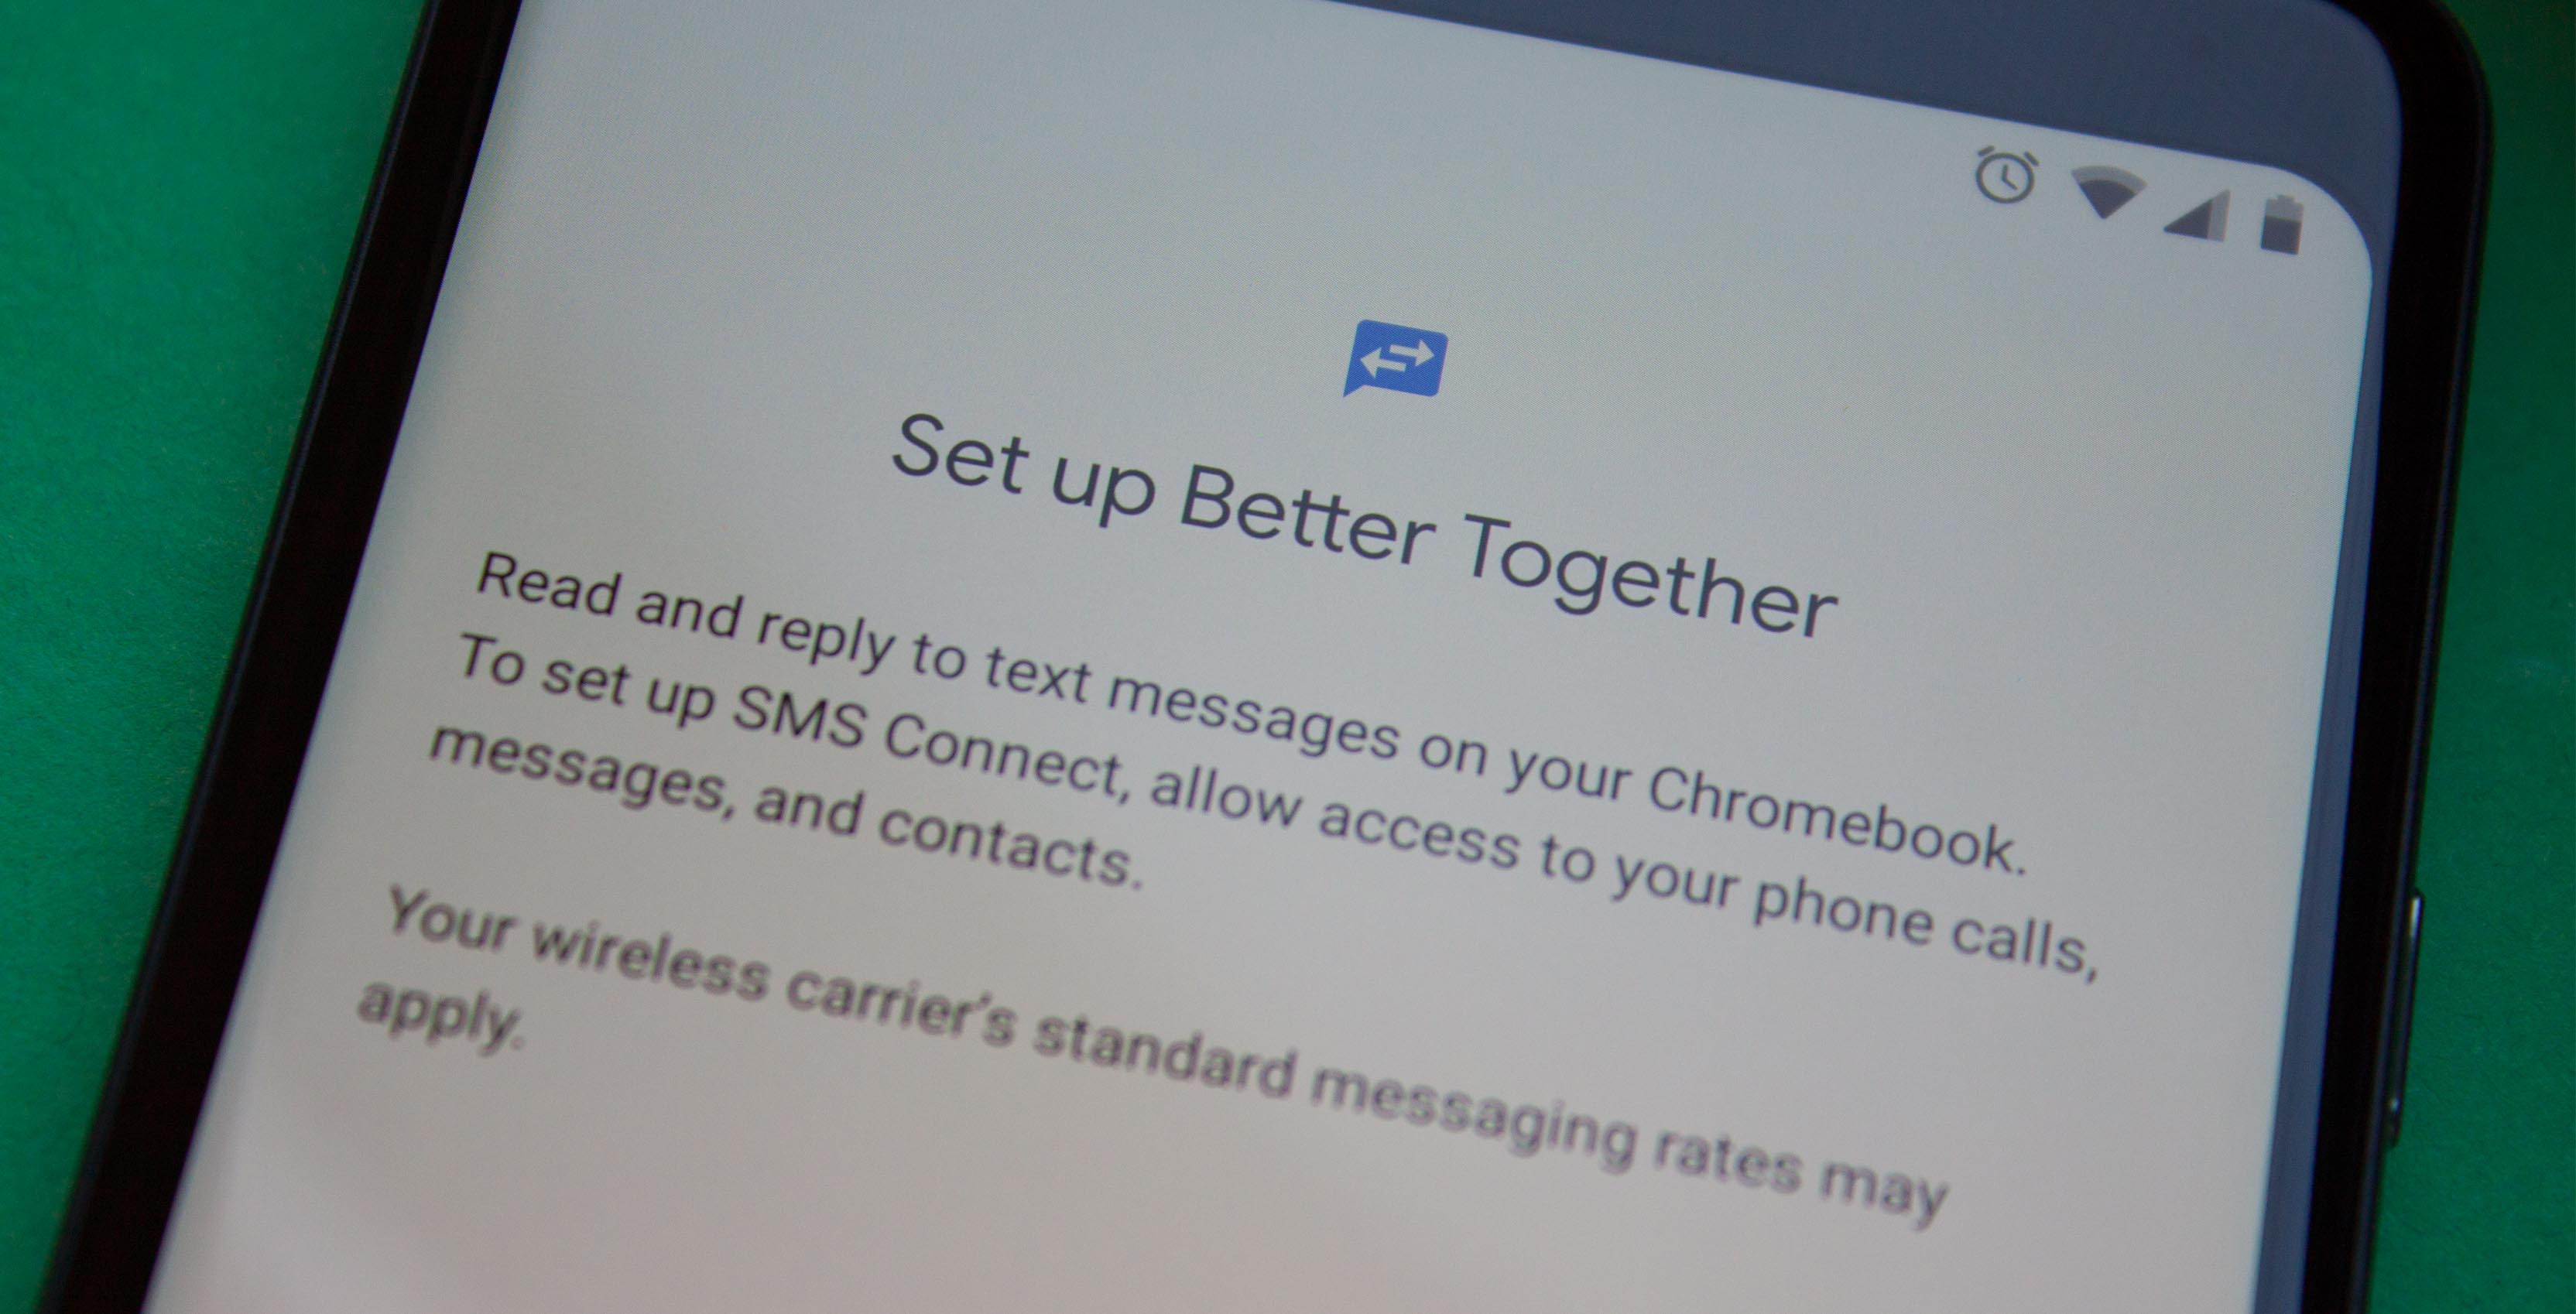 Better Together setup screen